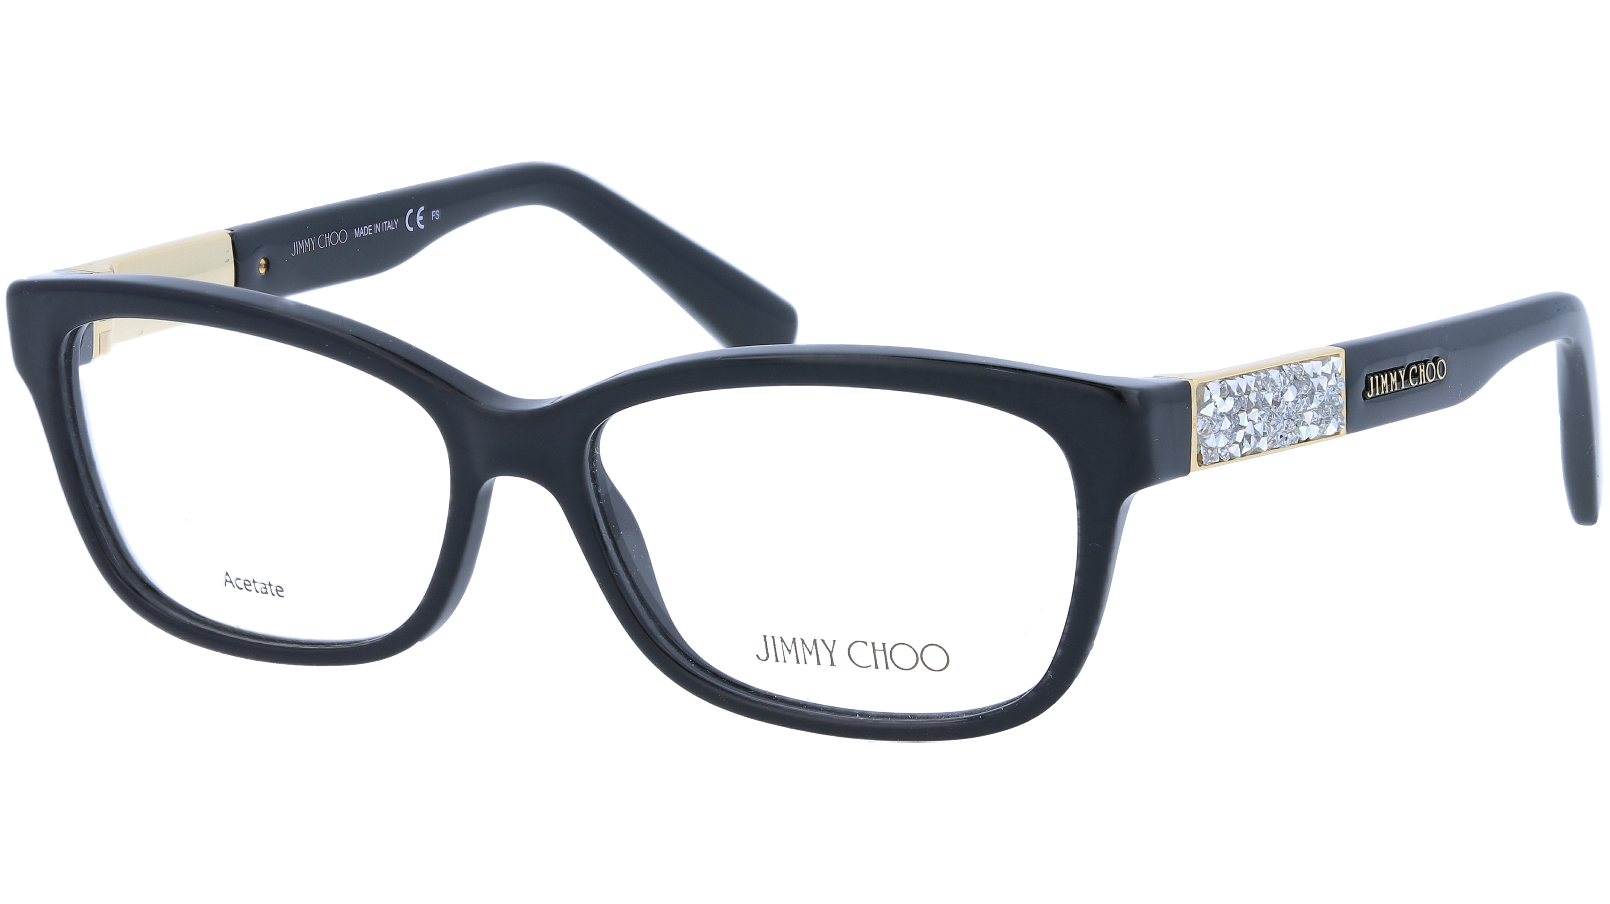 JIMMY CHOO JC110 29A 53 SHINY Glasses